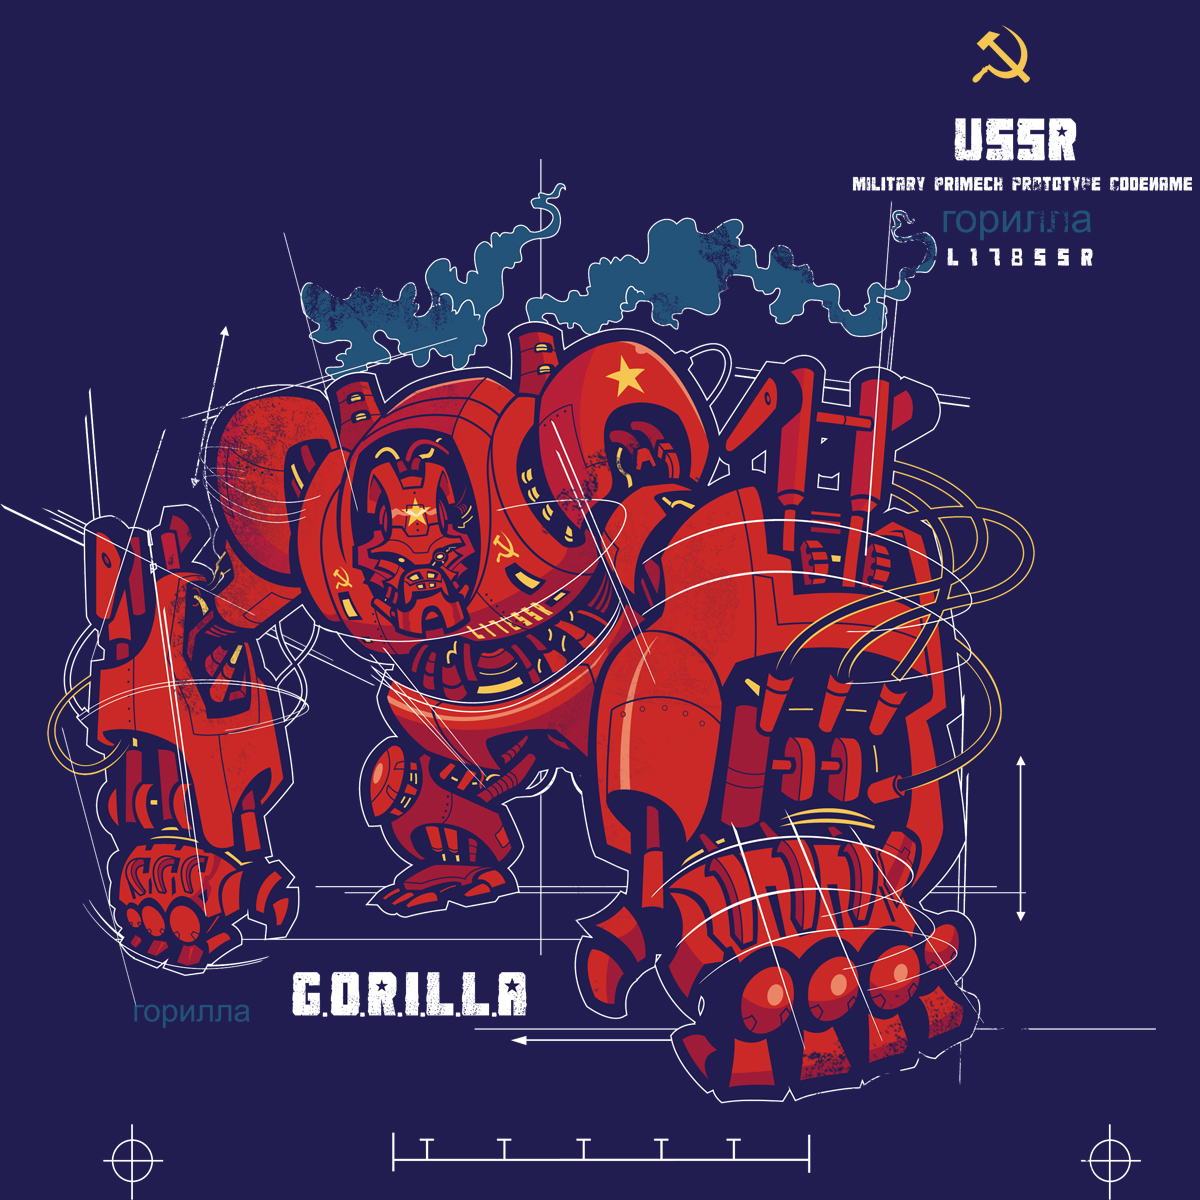 Cold War Gorilla